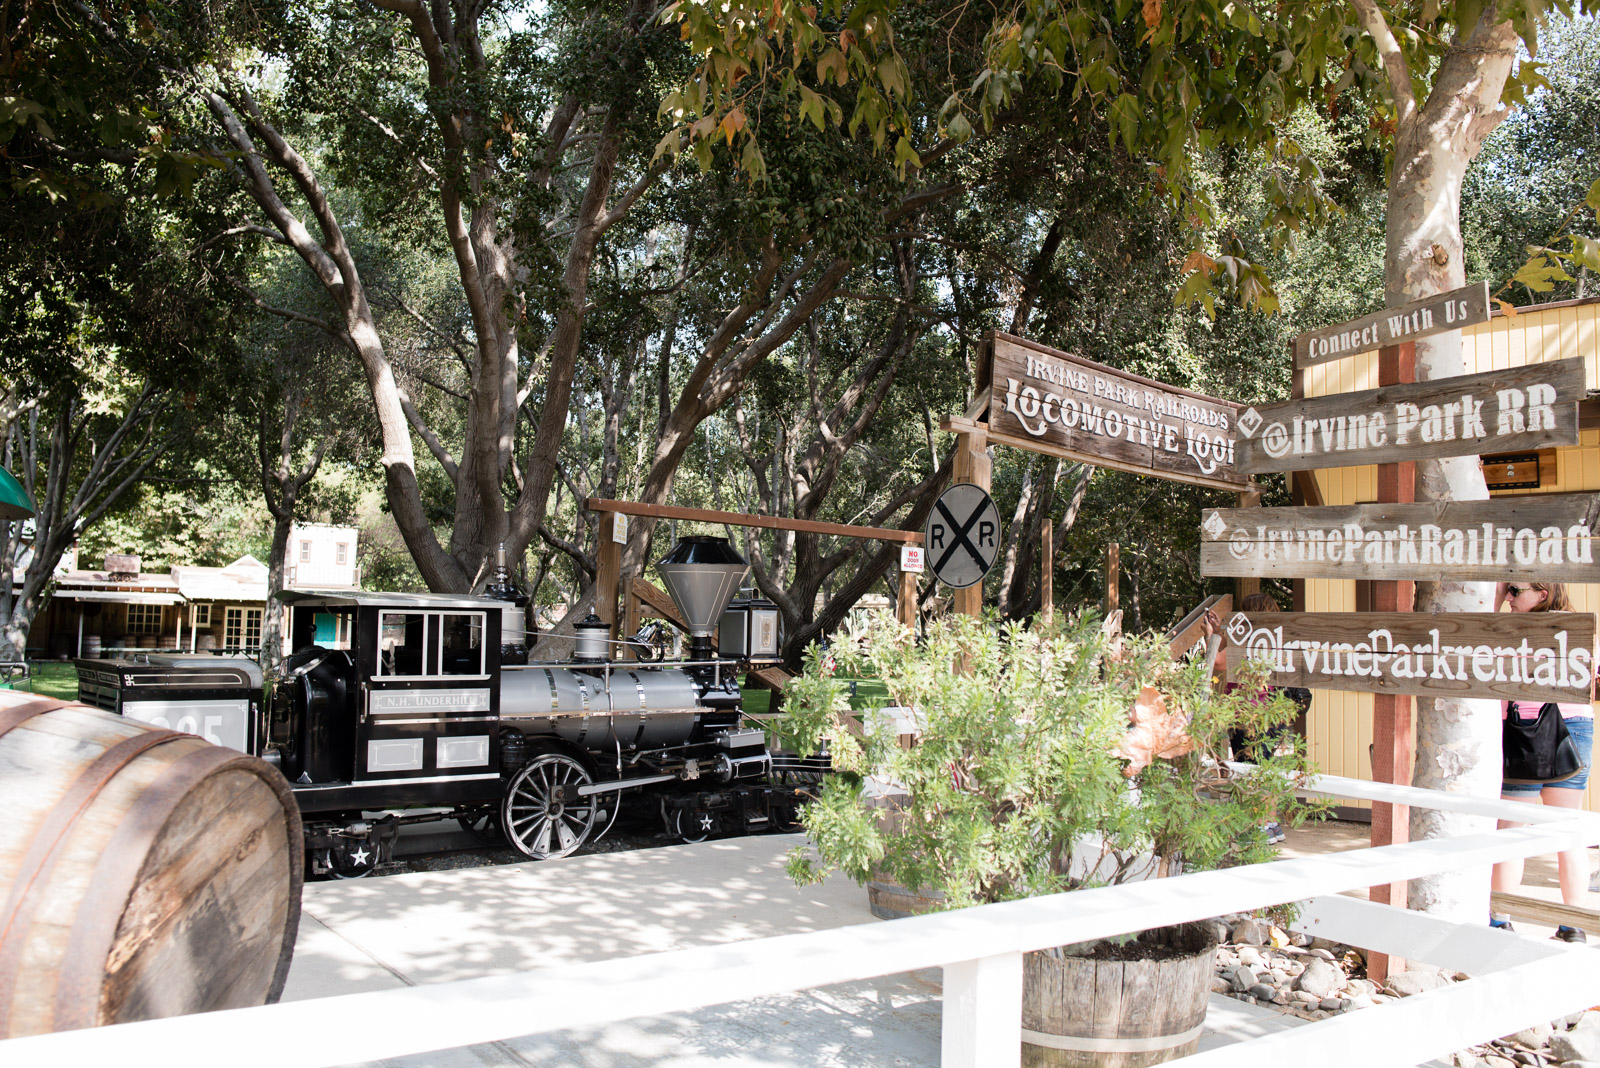 Tiffany Luong photographs Irvine Park Railroad for Westways